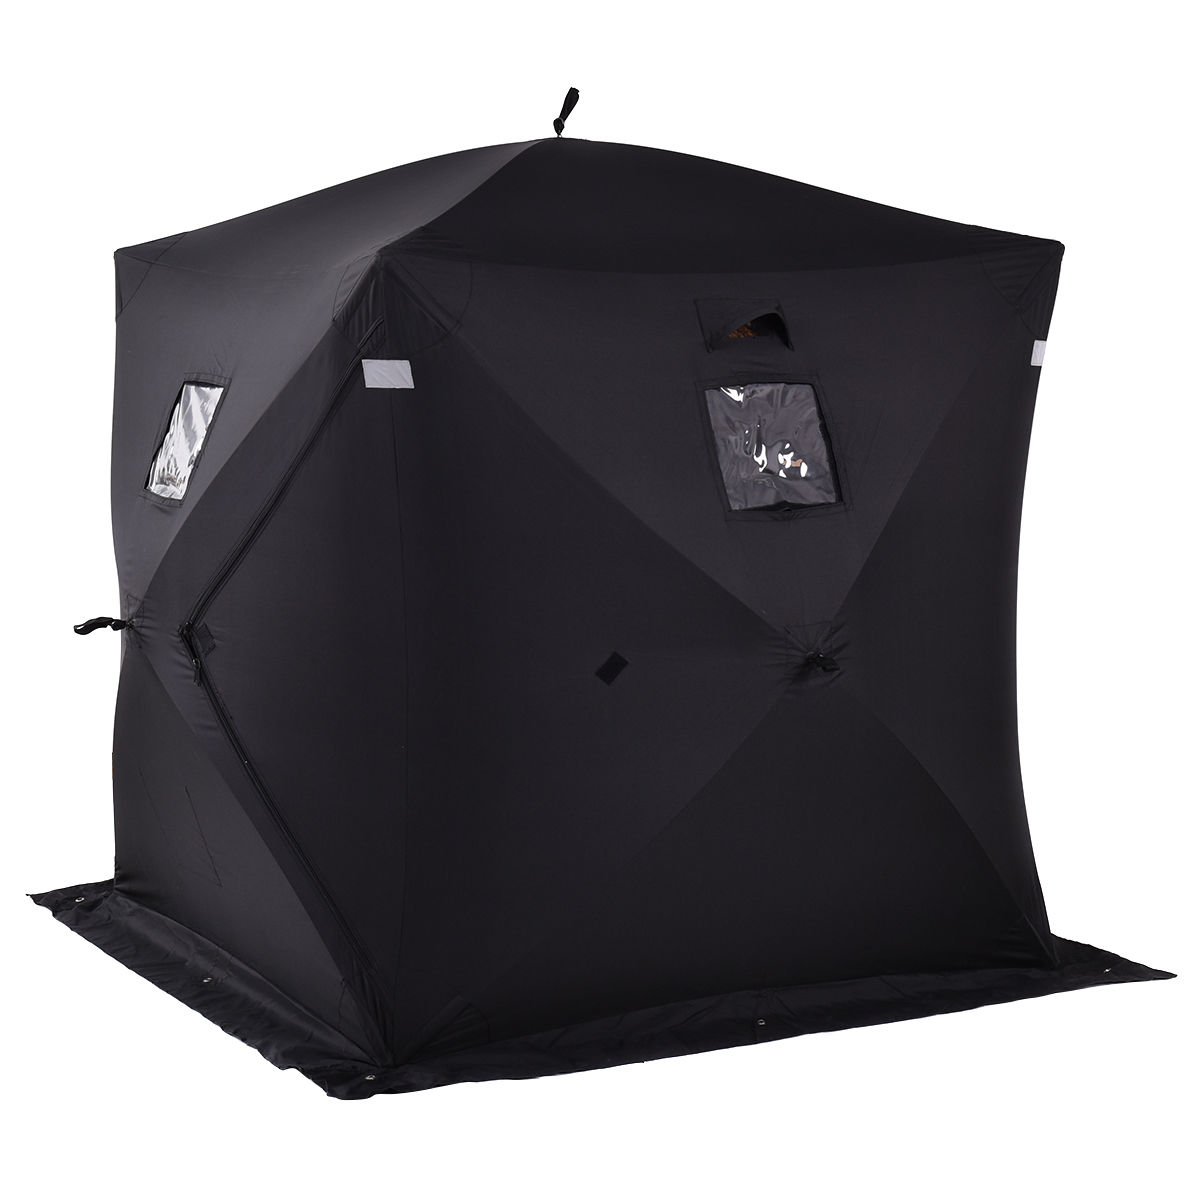 2-Person Outdoor Portable Ice Fishing Shelter Tent